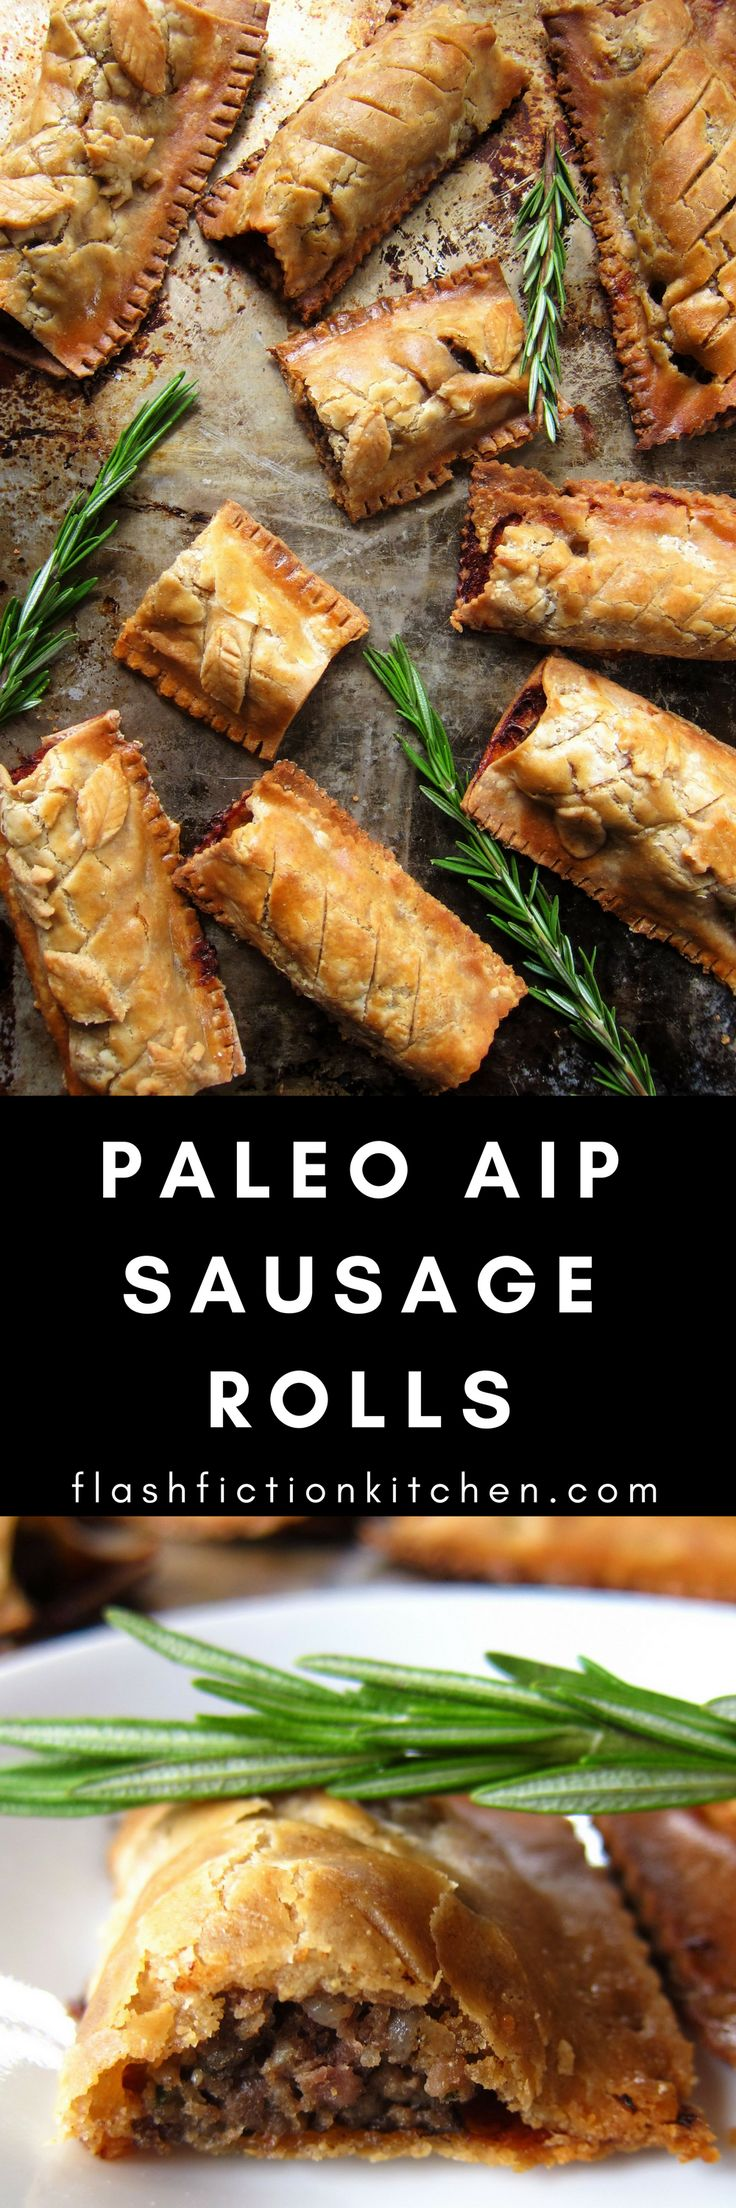 Sausage Rolls & Pasties from Flash Fiction Kitchen (Paleo, AIP)